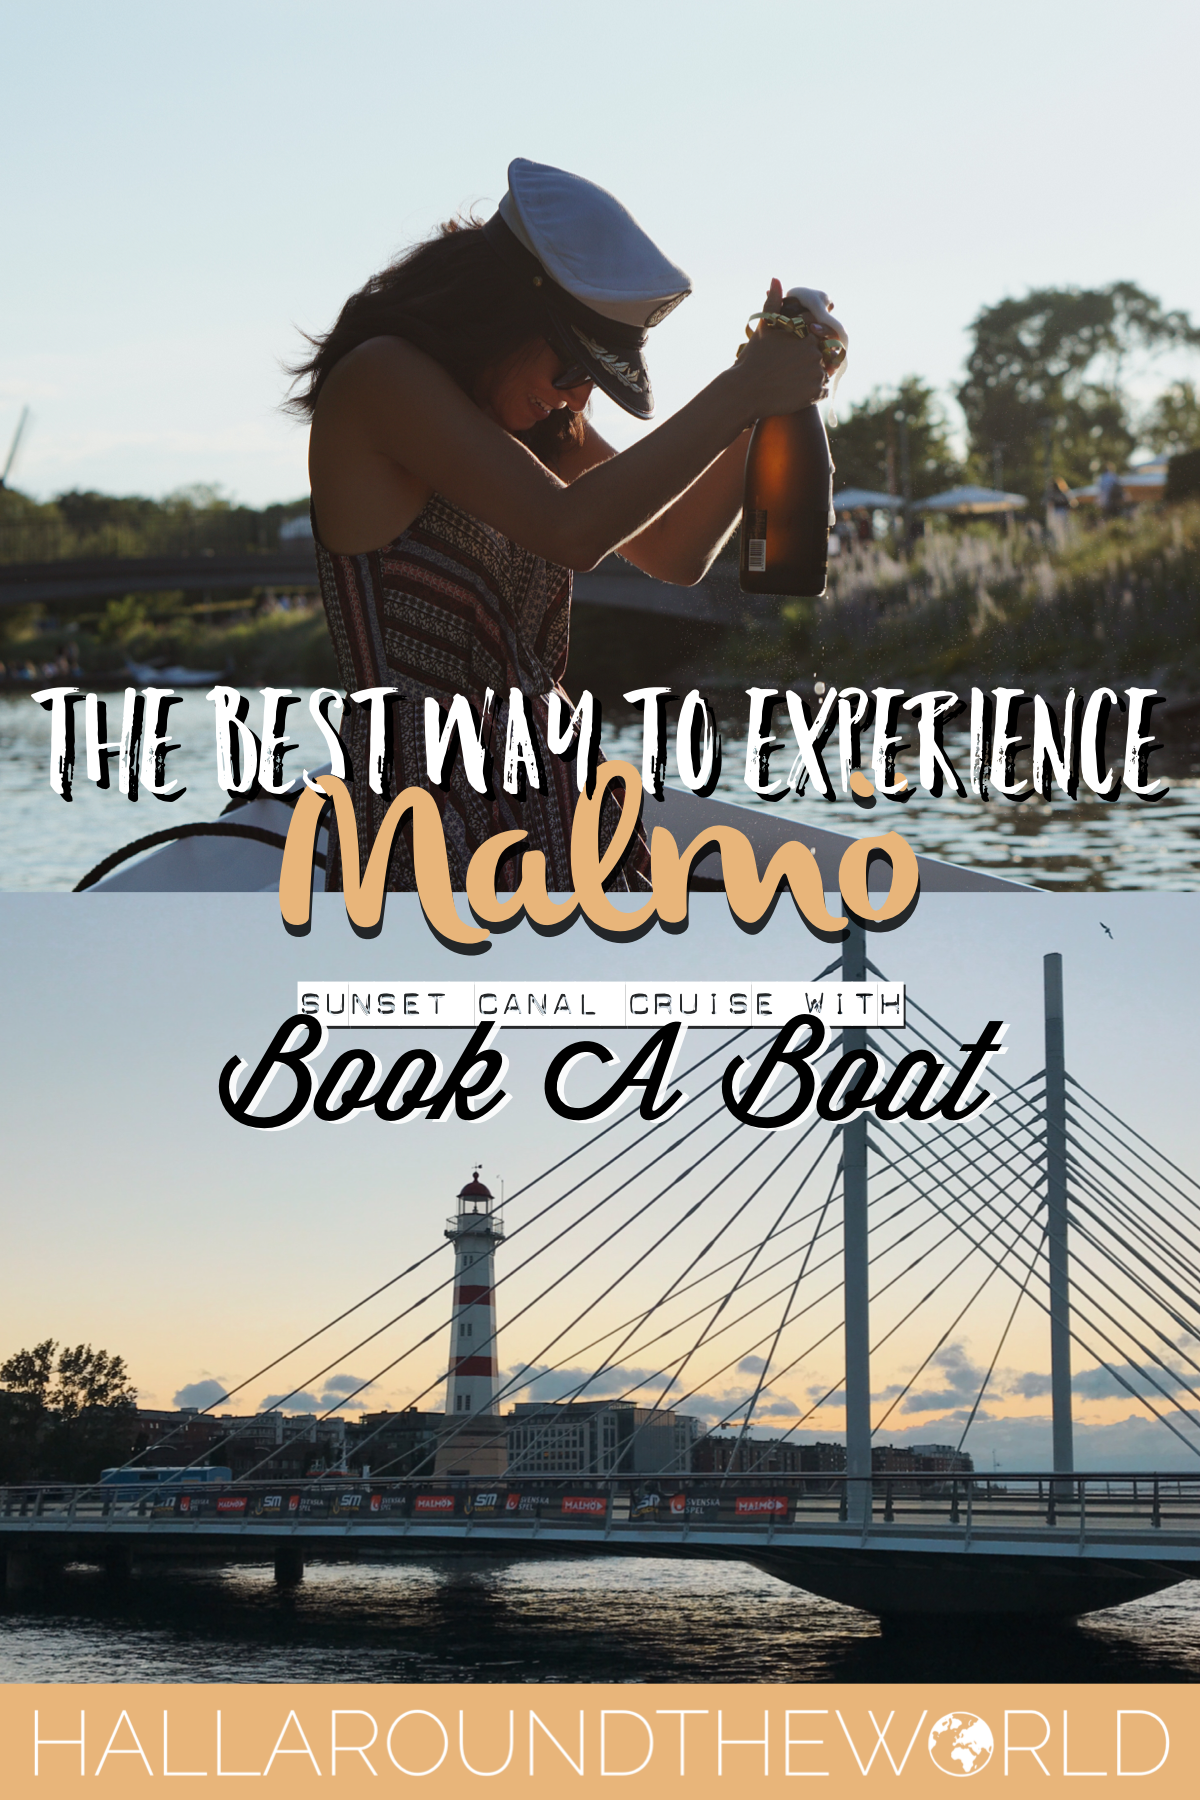 The Best Way to Experience Malmo - Sunset Canal Cruise with BookABoat | HallAroundtheWorld